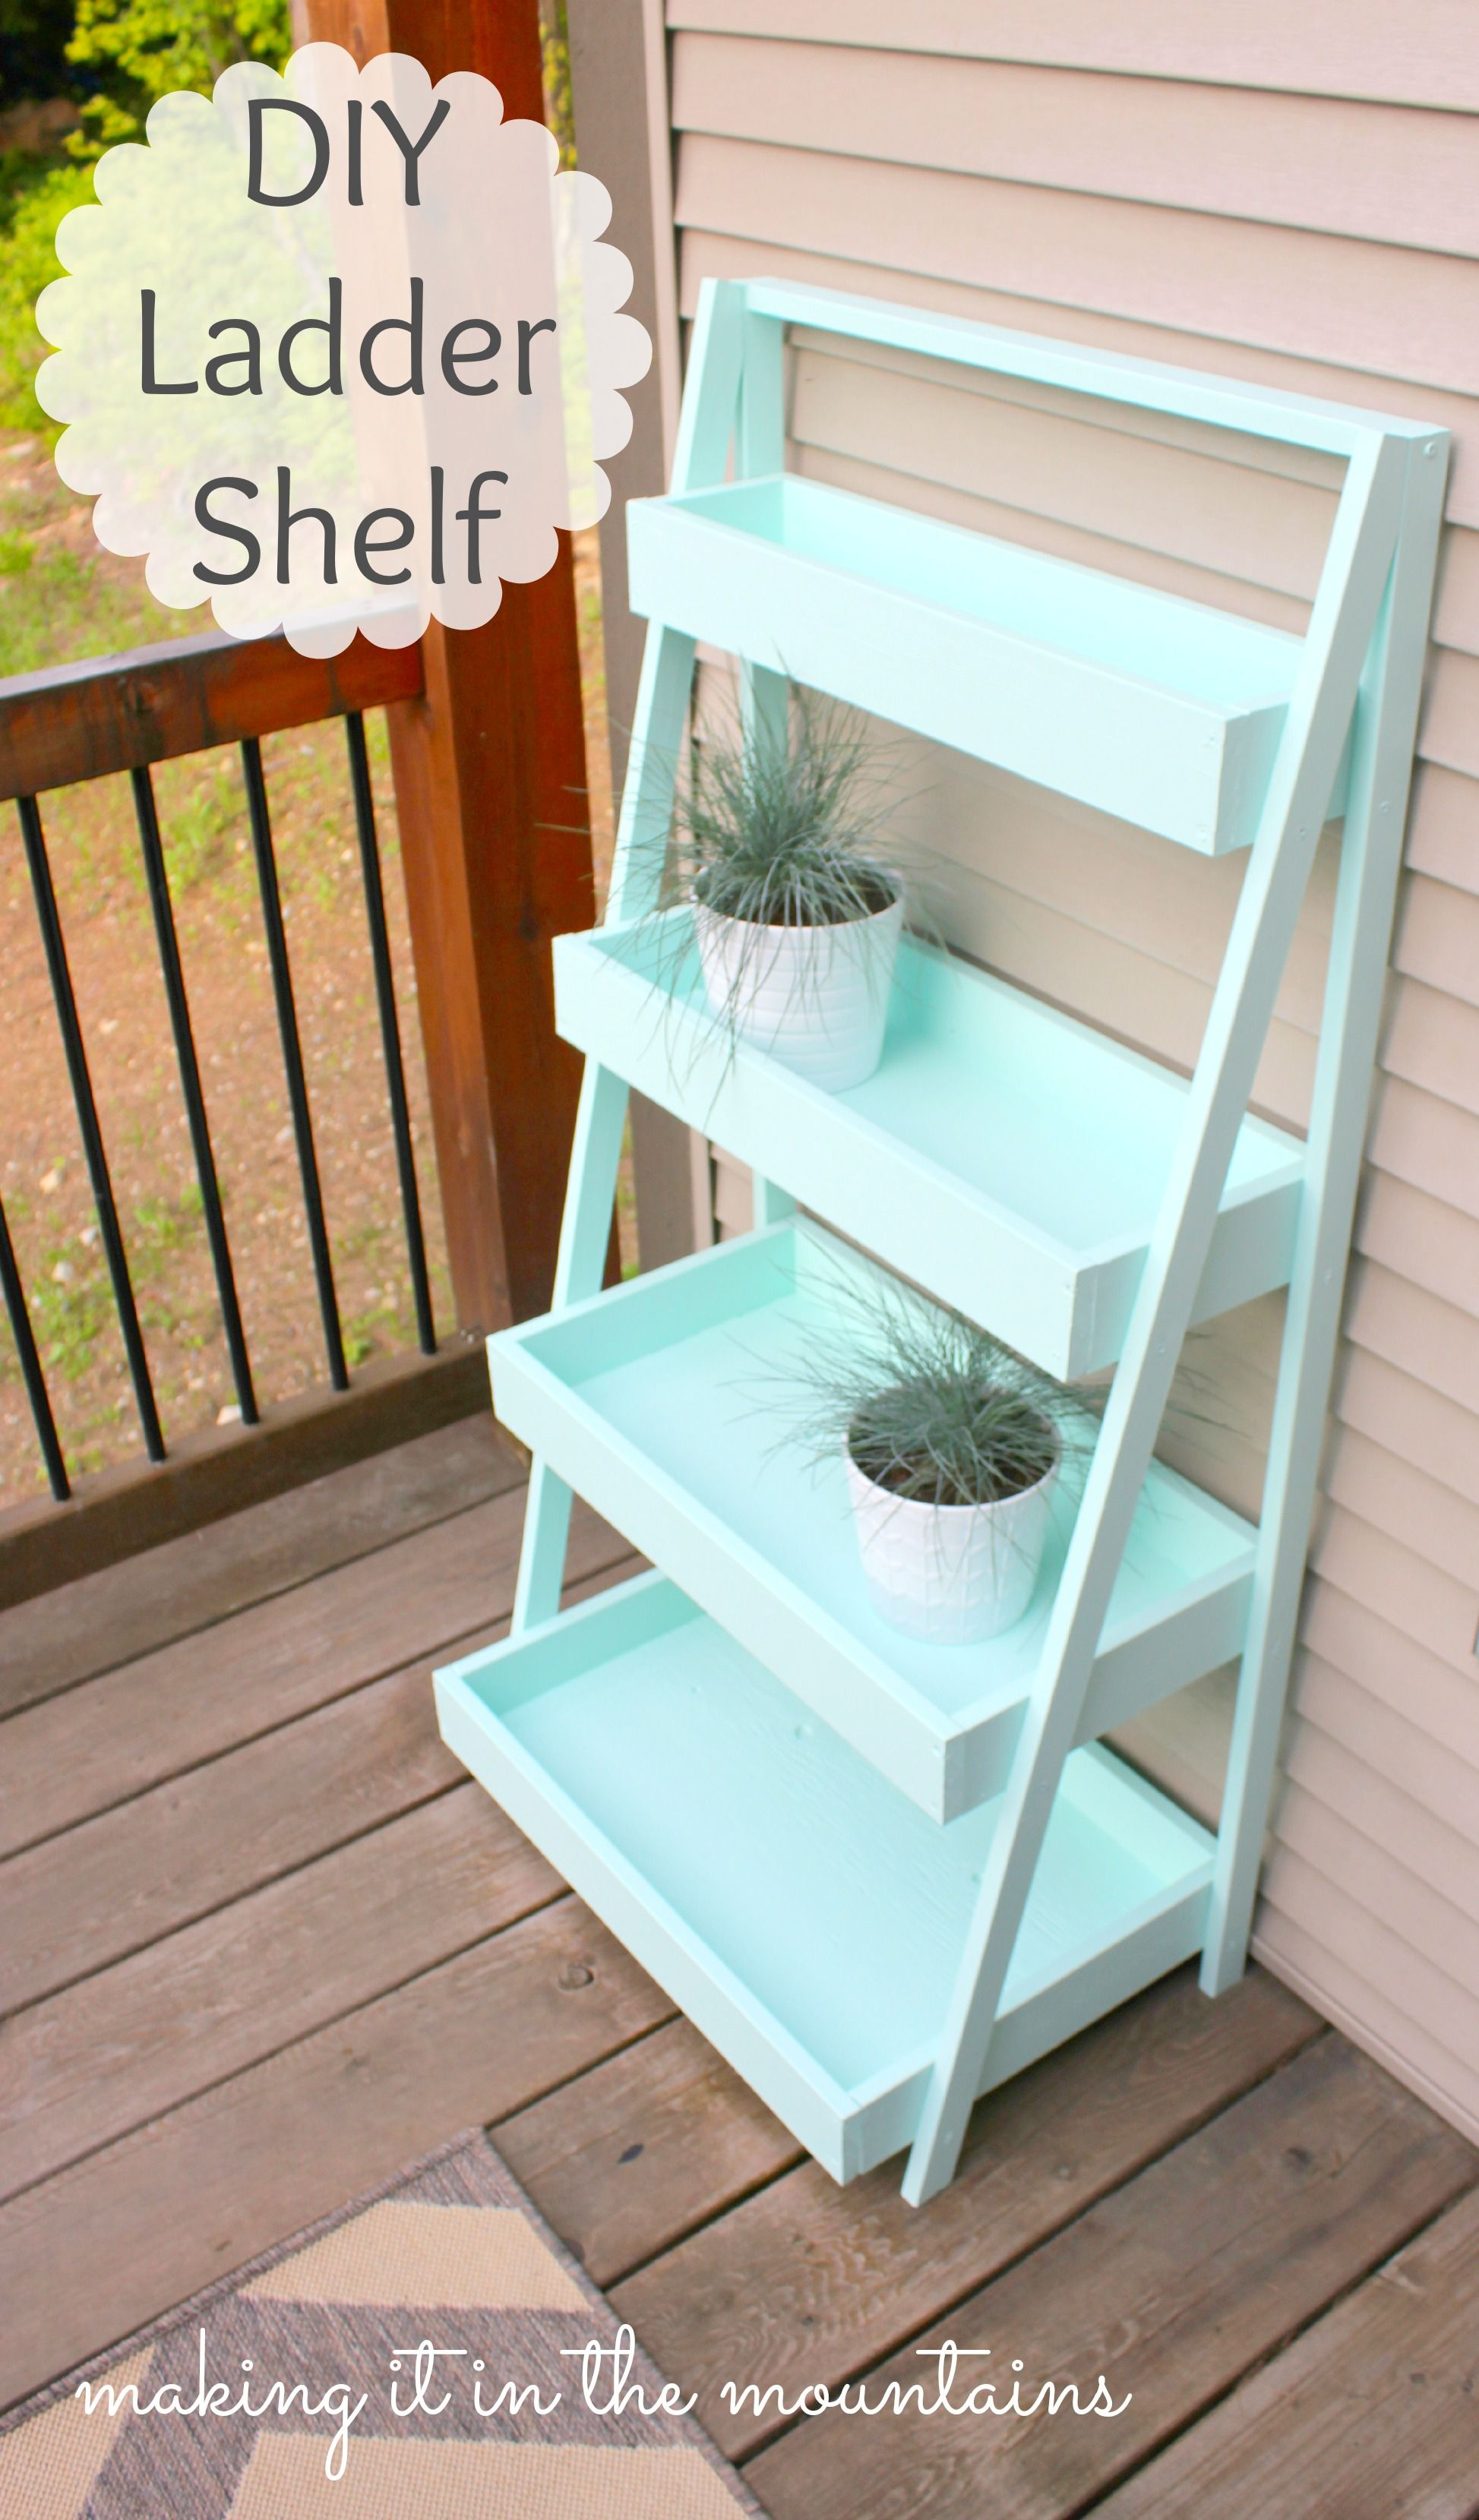 Diy ladder shelf do it yourself home projects from ana wh diy ladder shelf do it yourself home projects from ana white possibly a great storage solution for kids toys serving stand also solutioingenieria Image collections